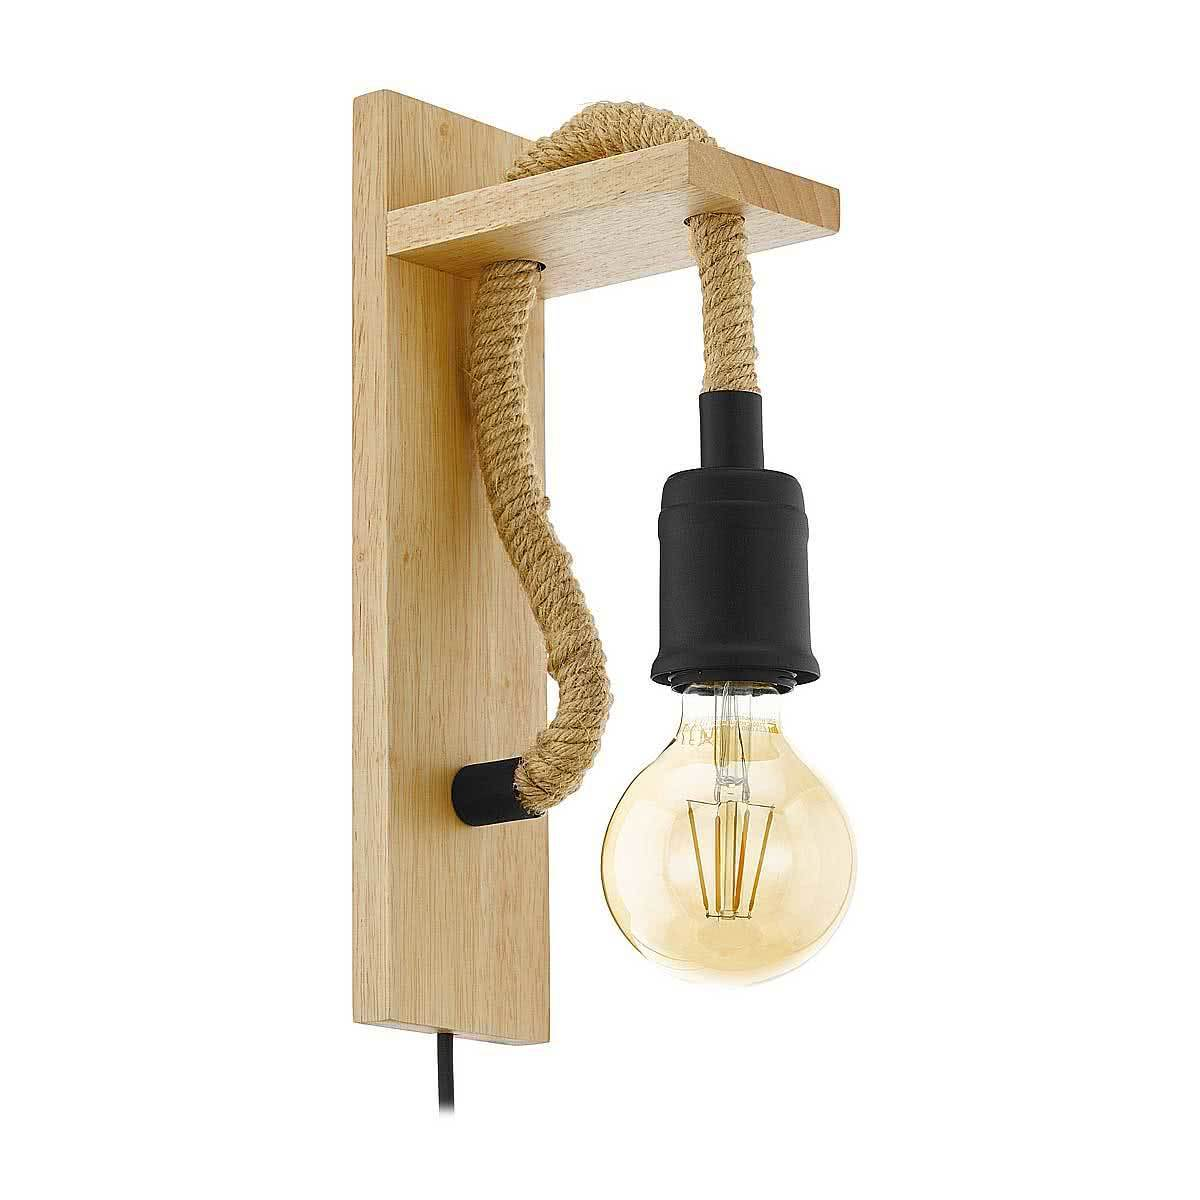 New Eglo Rampside Rustic Rope Wall Light Ebay